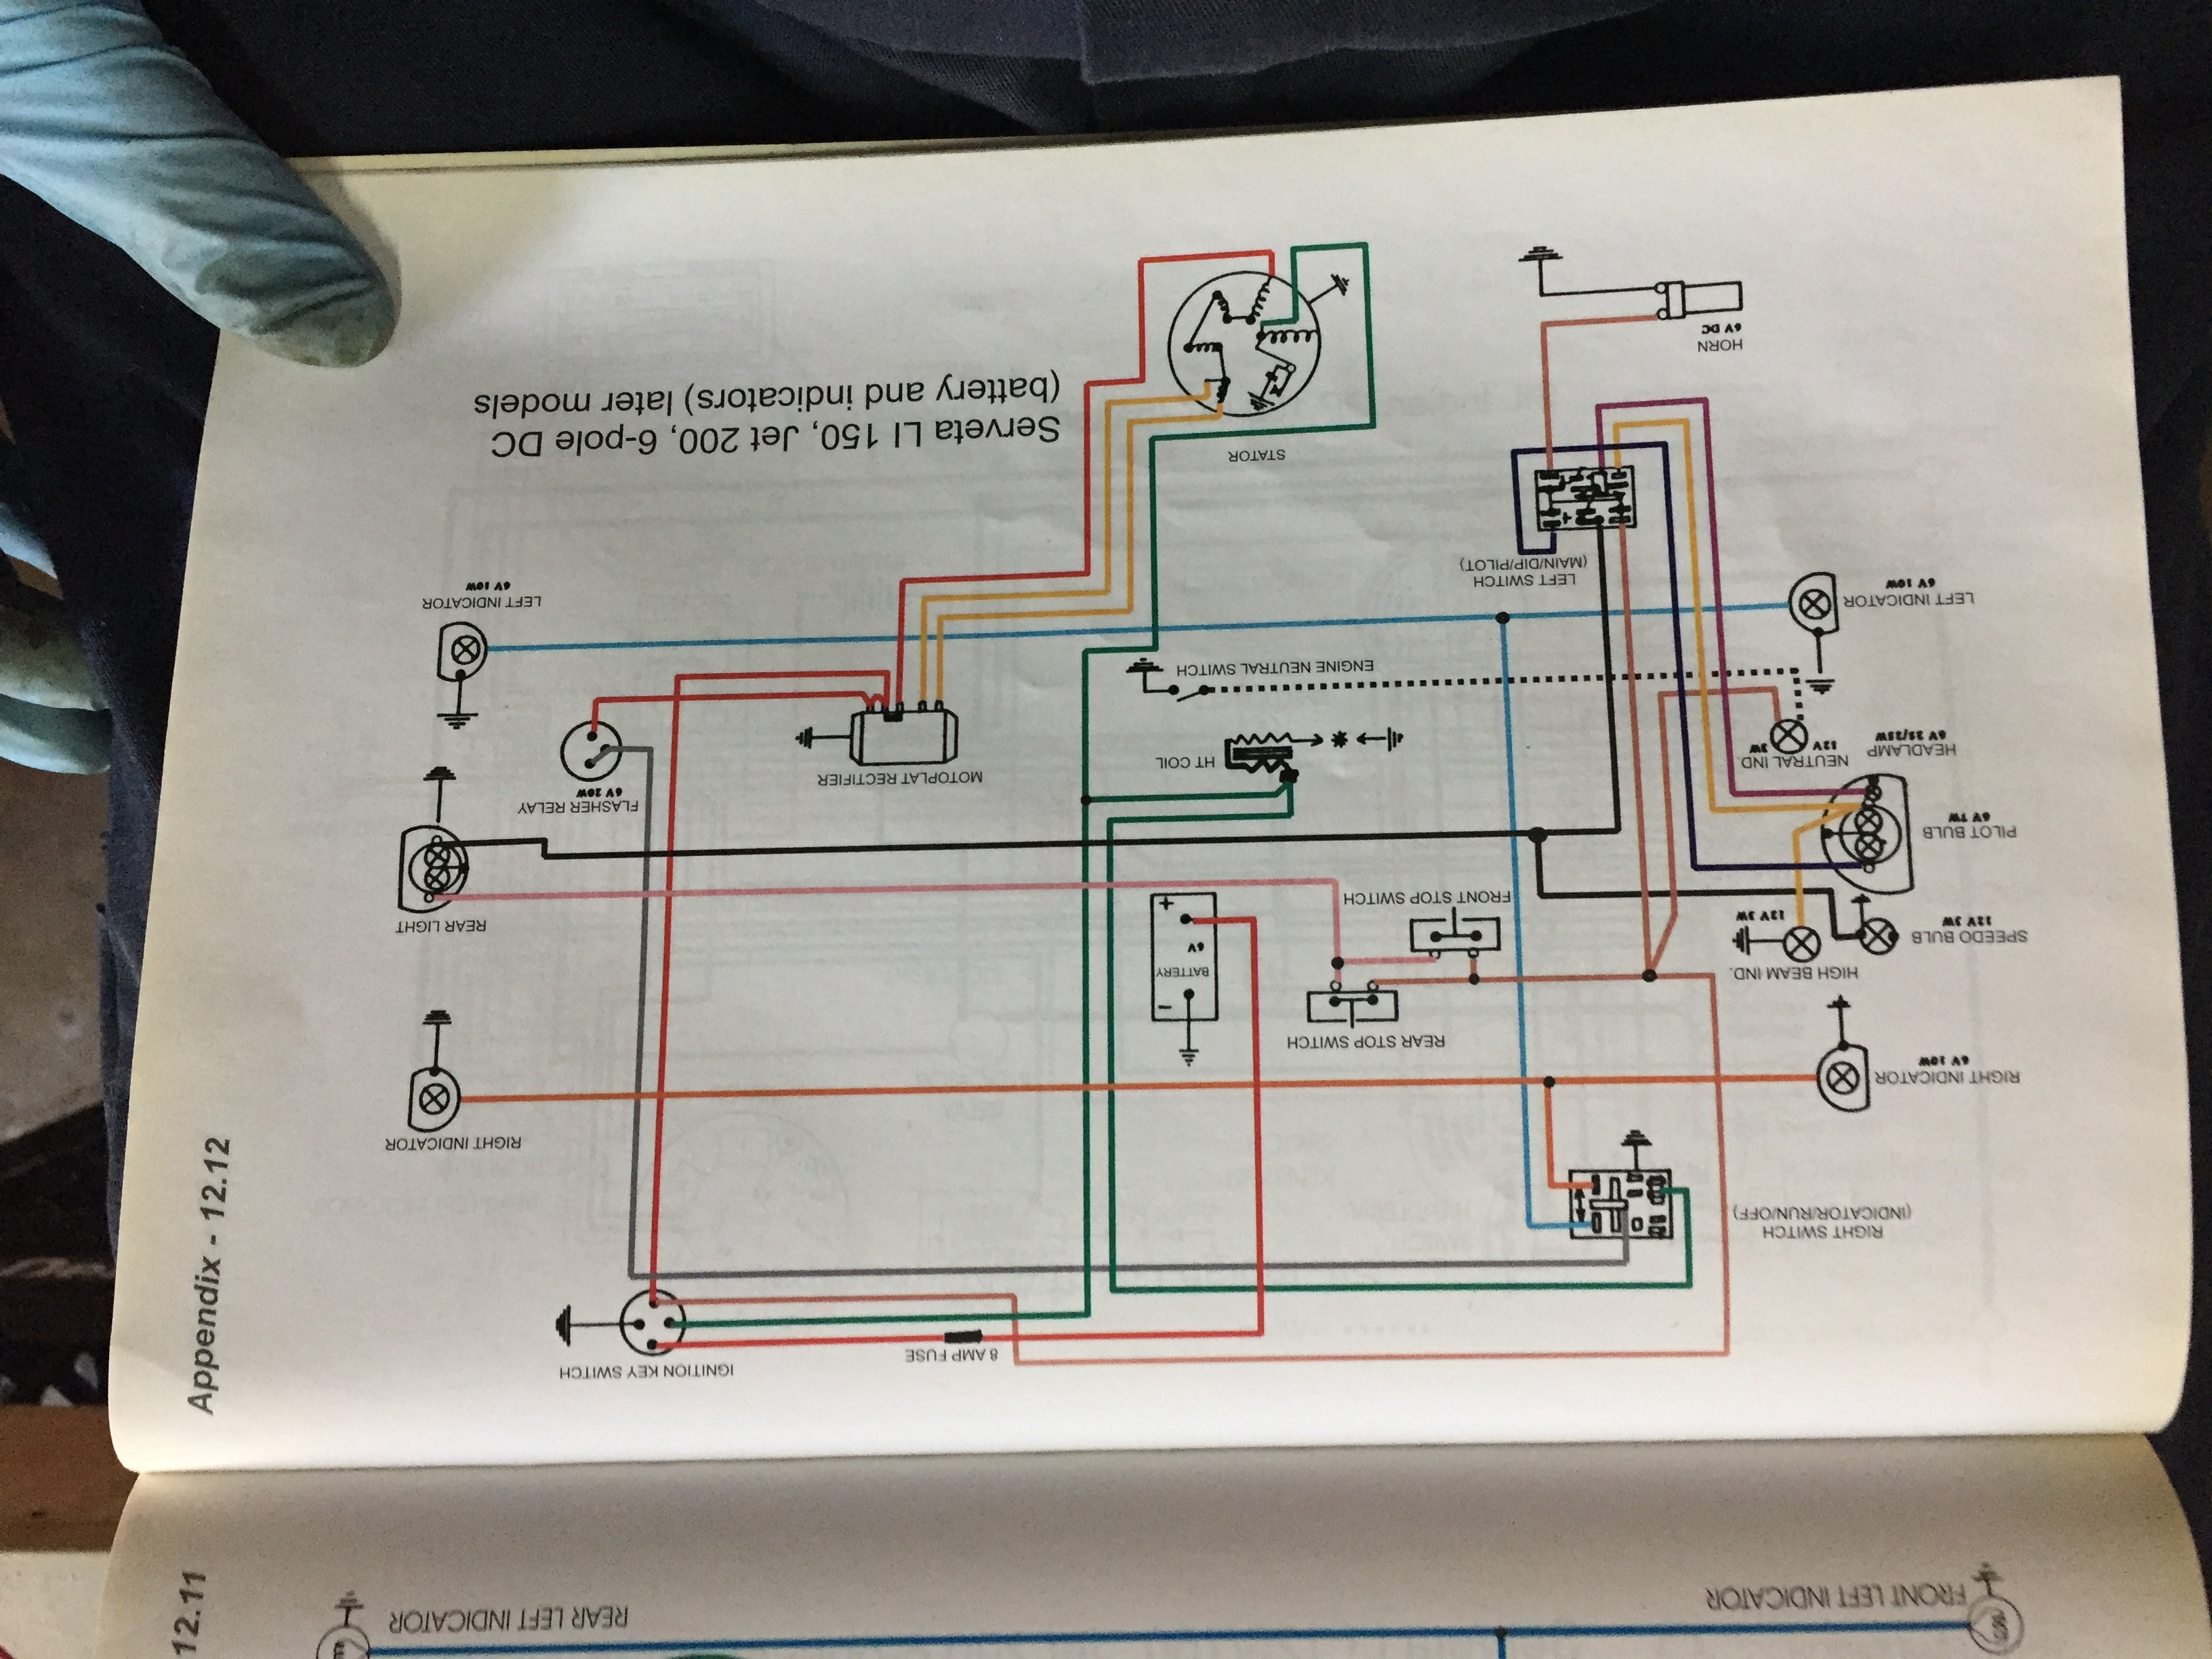 Serveta ac wiring series 1 2 3 to gp lambretta club usa this seems to be the wiring diagram im looking at asfbconference2016 Images